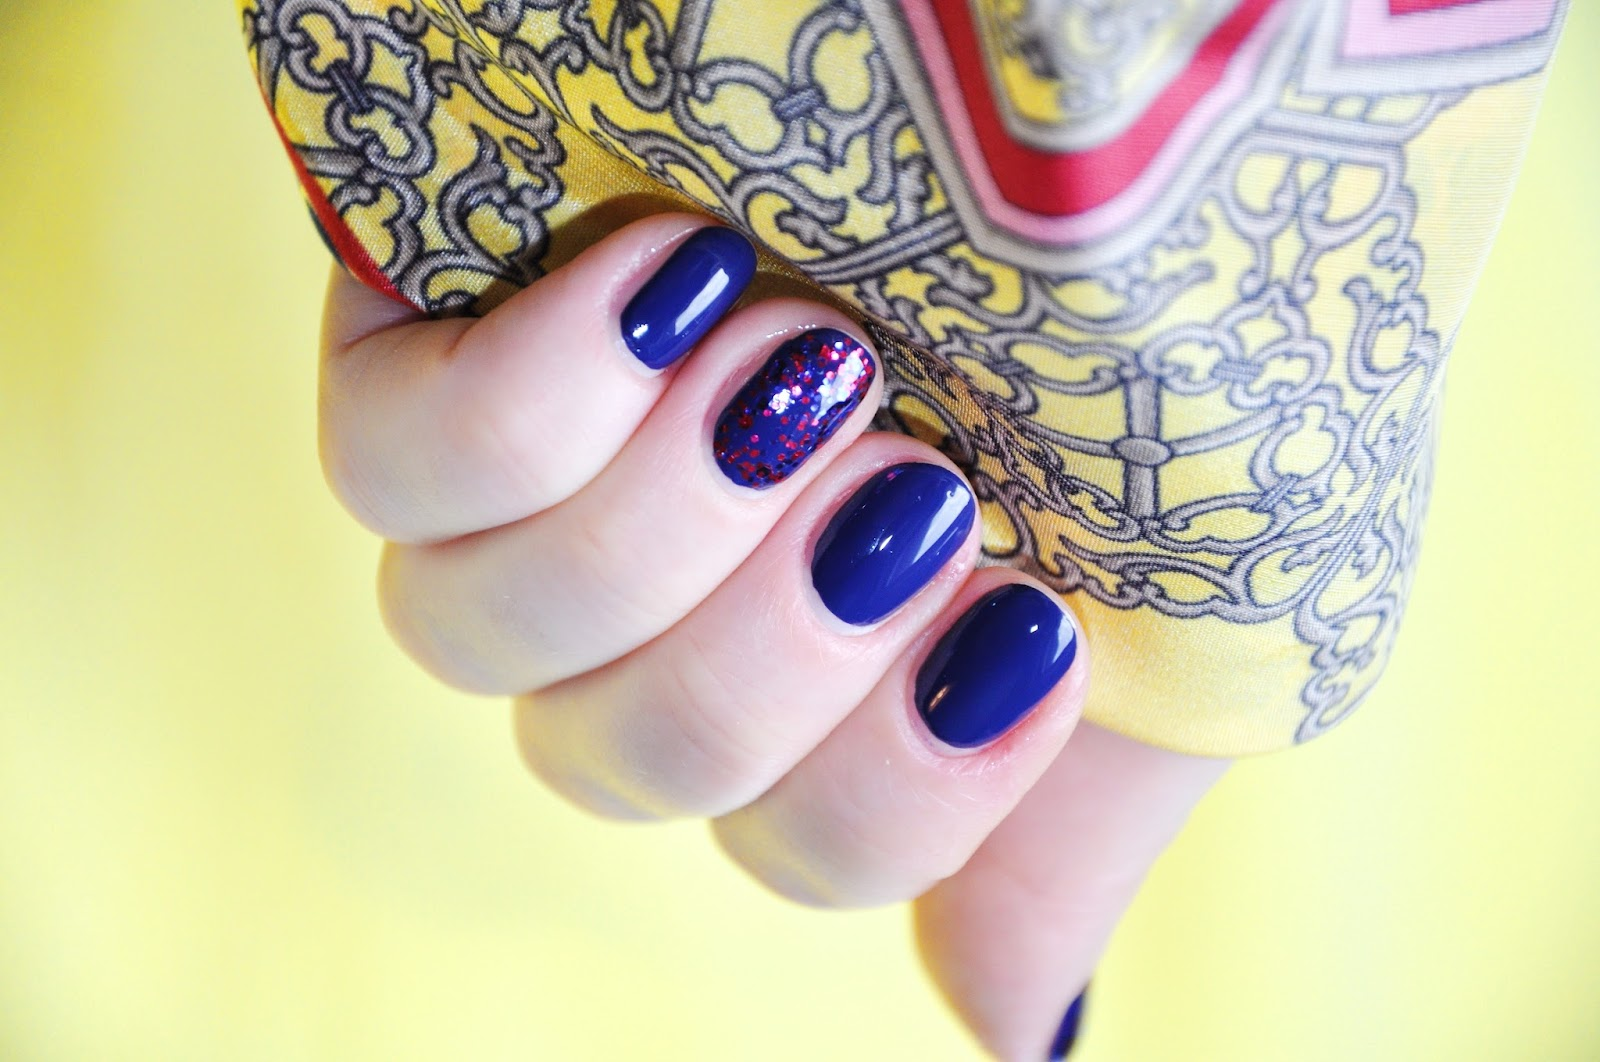 CHINA GLAZE be merry be bright queen b